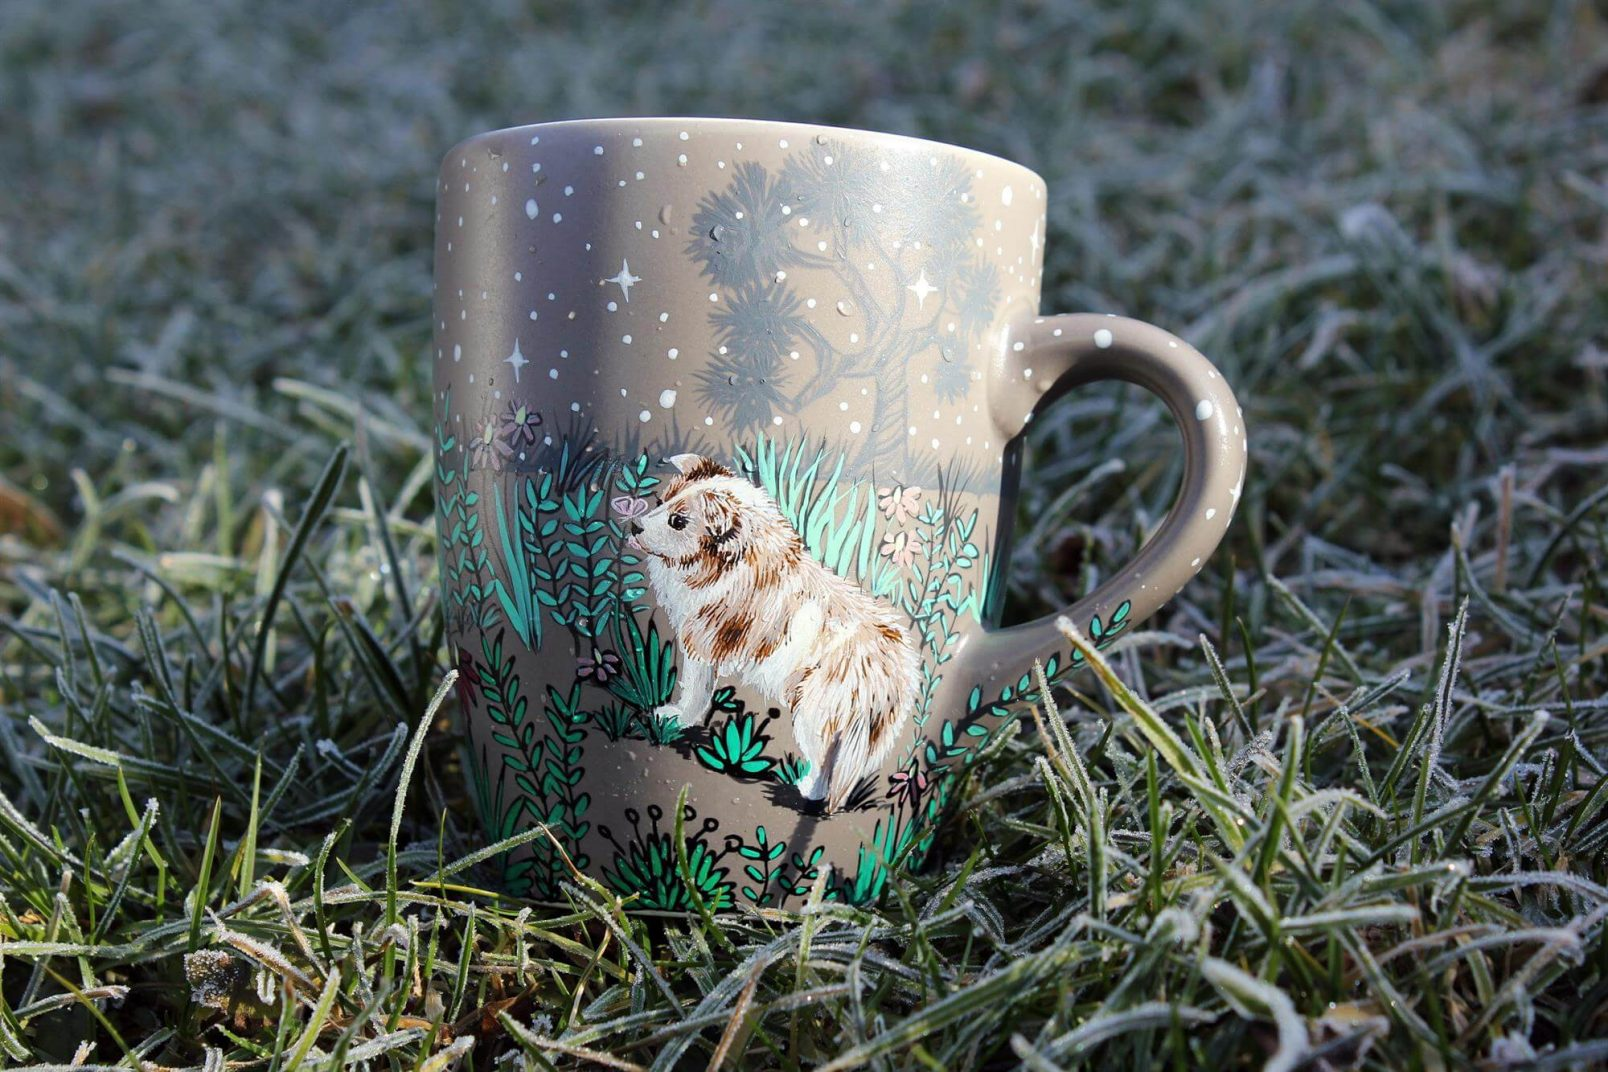 Personalizet custom pet mug coffe tea cup hand painted handmade illustration mug pet forest meadow bird cat moon grass pine trees mug etsy store 8